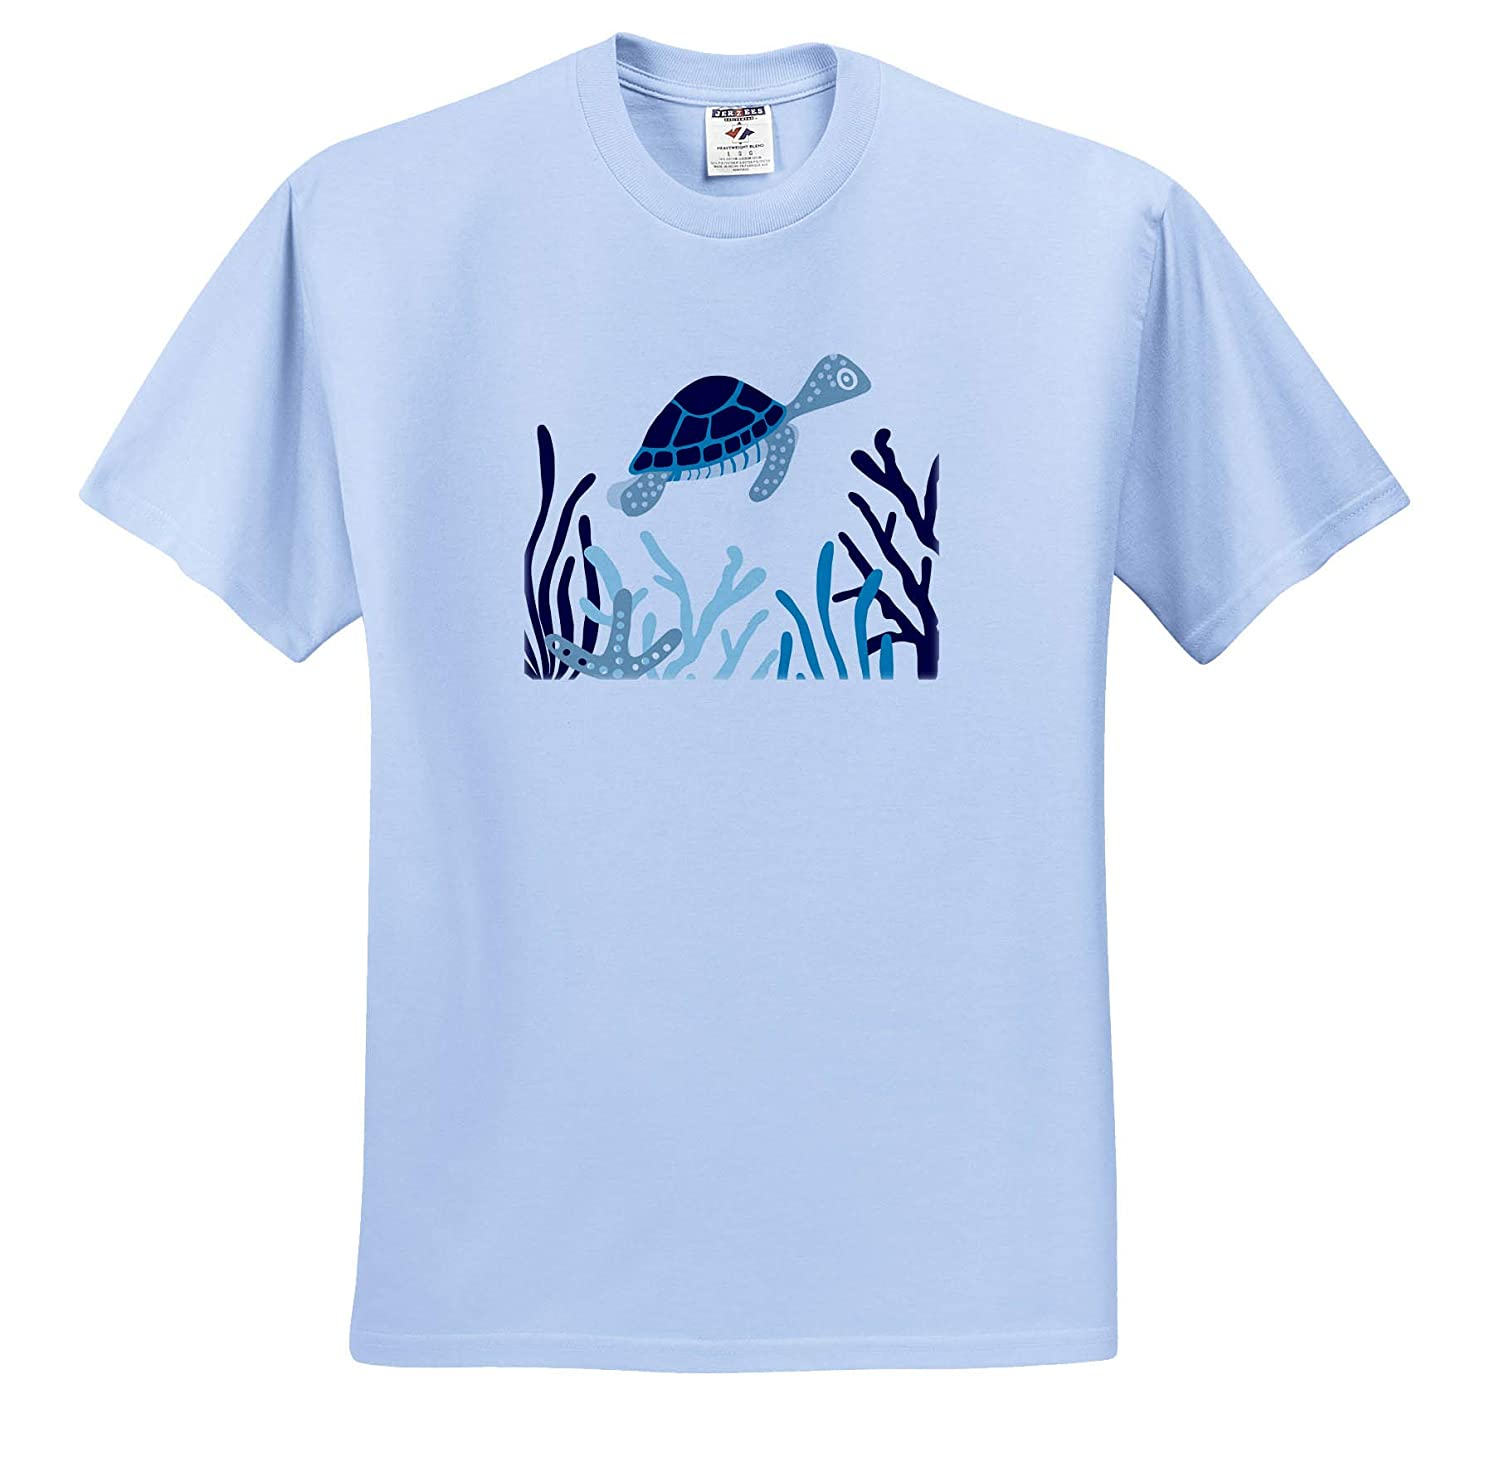 3dRose Janna Salak Designs Under The Sea ts/_310703 Sea Turtle Blue Seaweed and Coral Adult T-Shirt XL